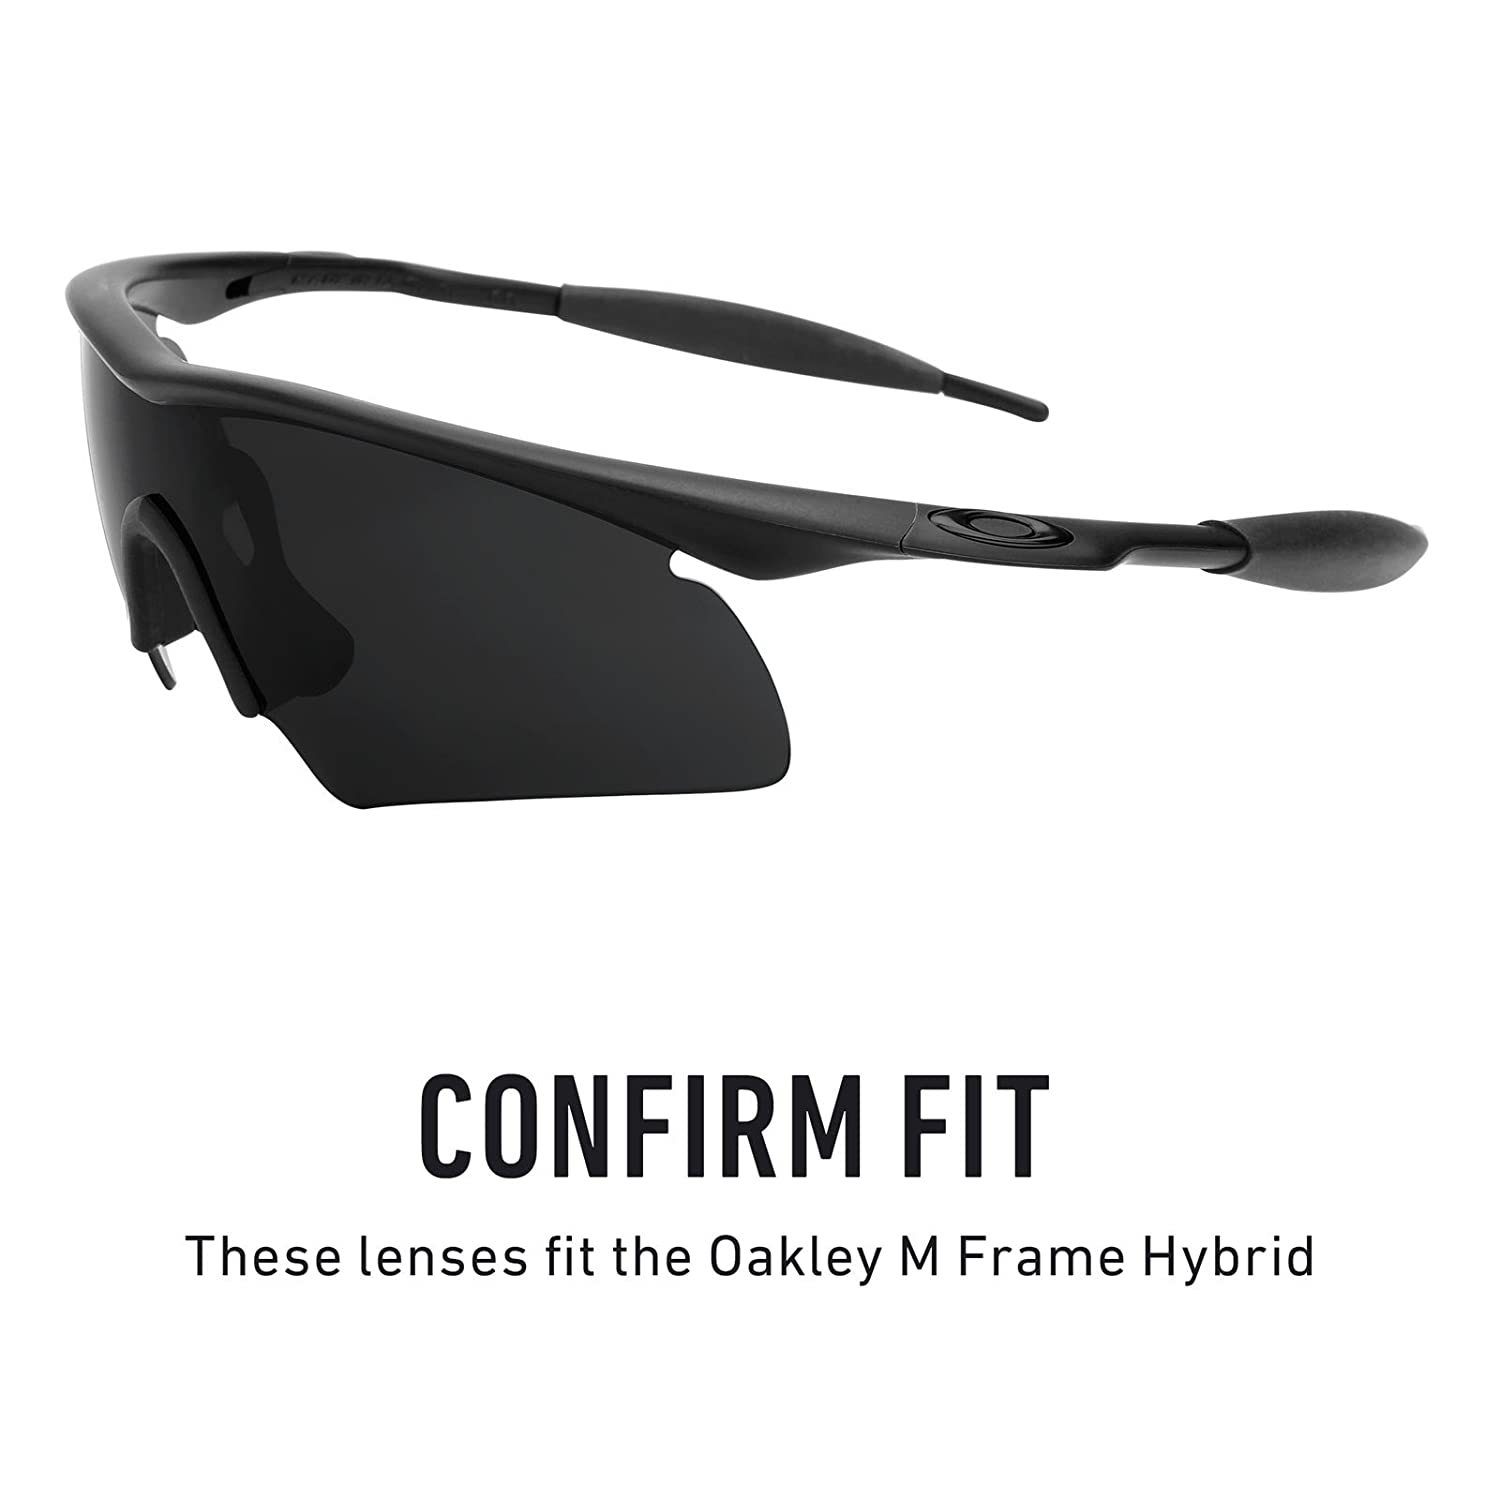 fea4ff1ace4 Amazon.com  Revant Polarized Replacement Lens for Oakley M Frame Hybrid  Black Chrome MirrorShield  Sports   Outdoors